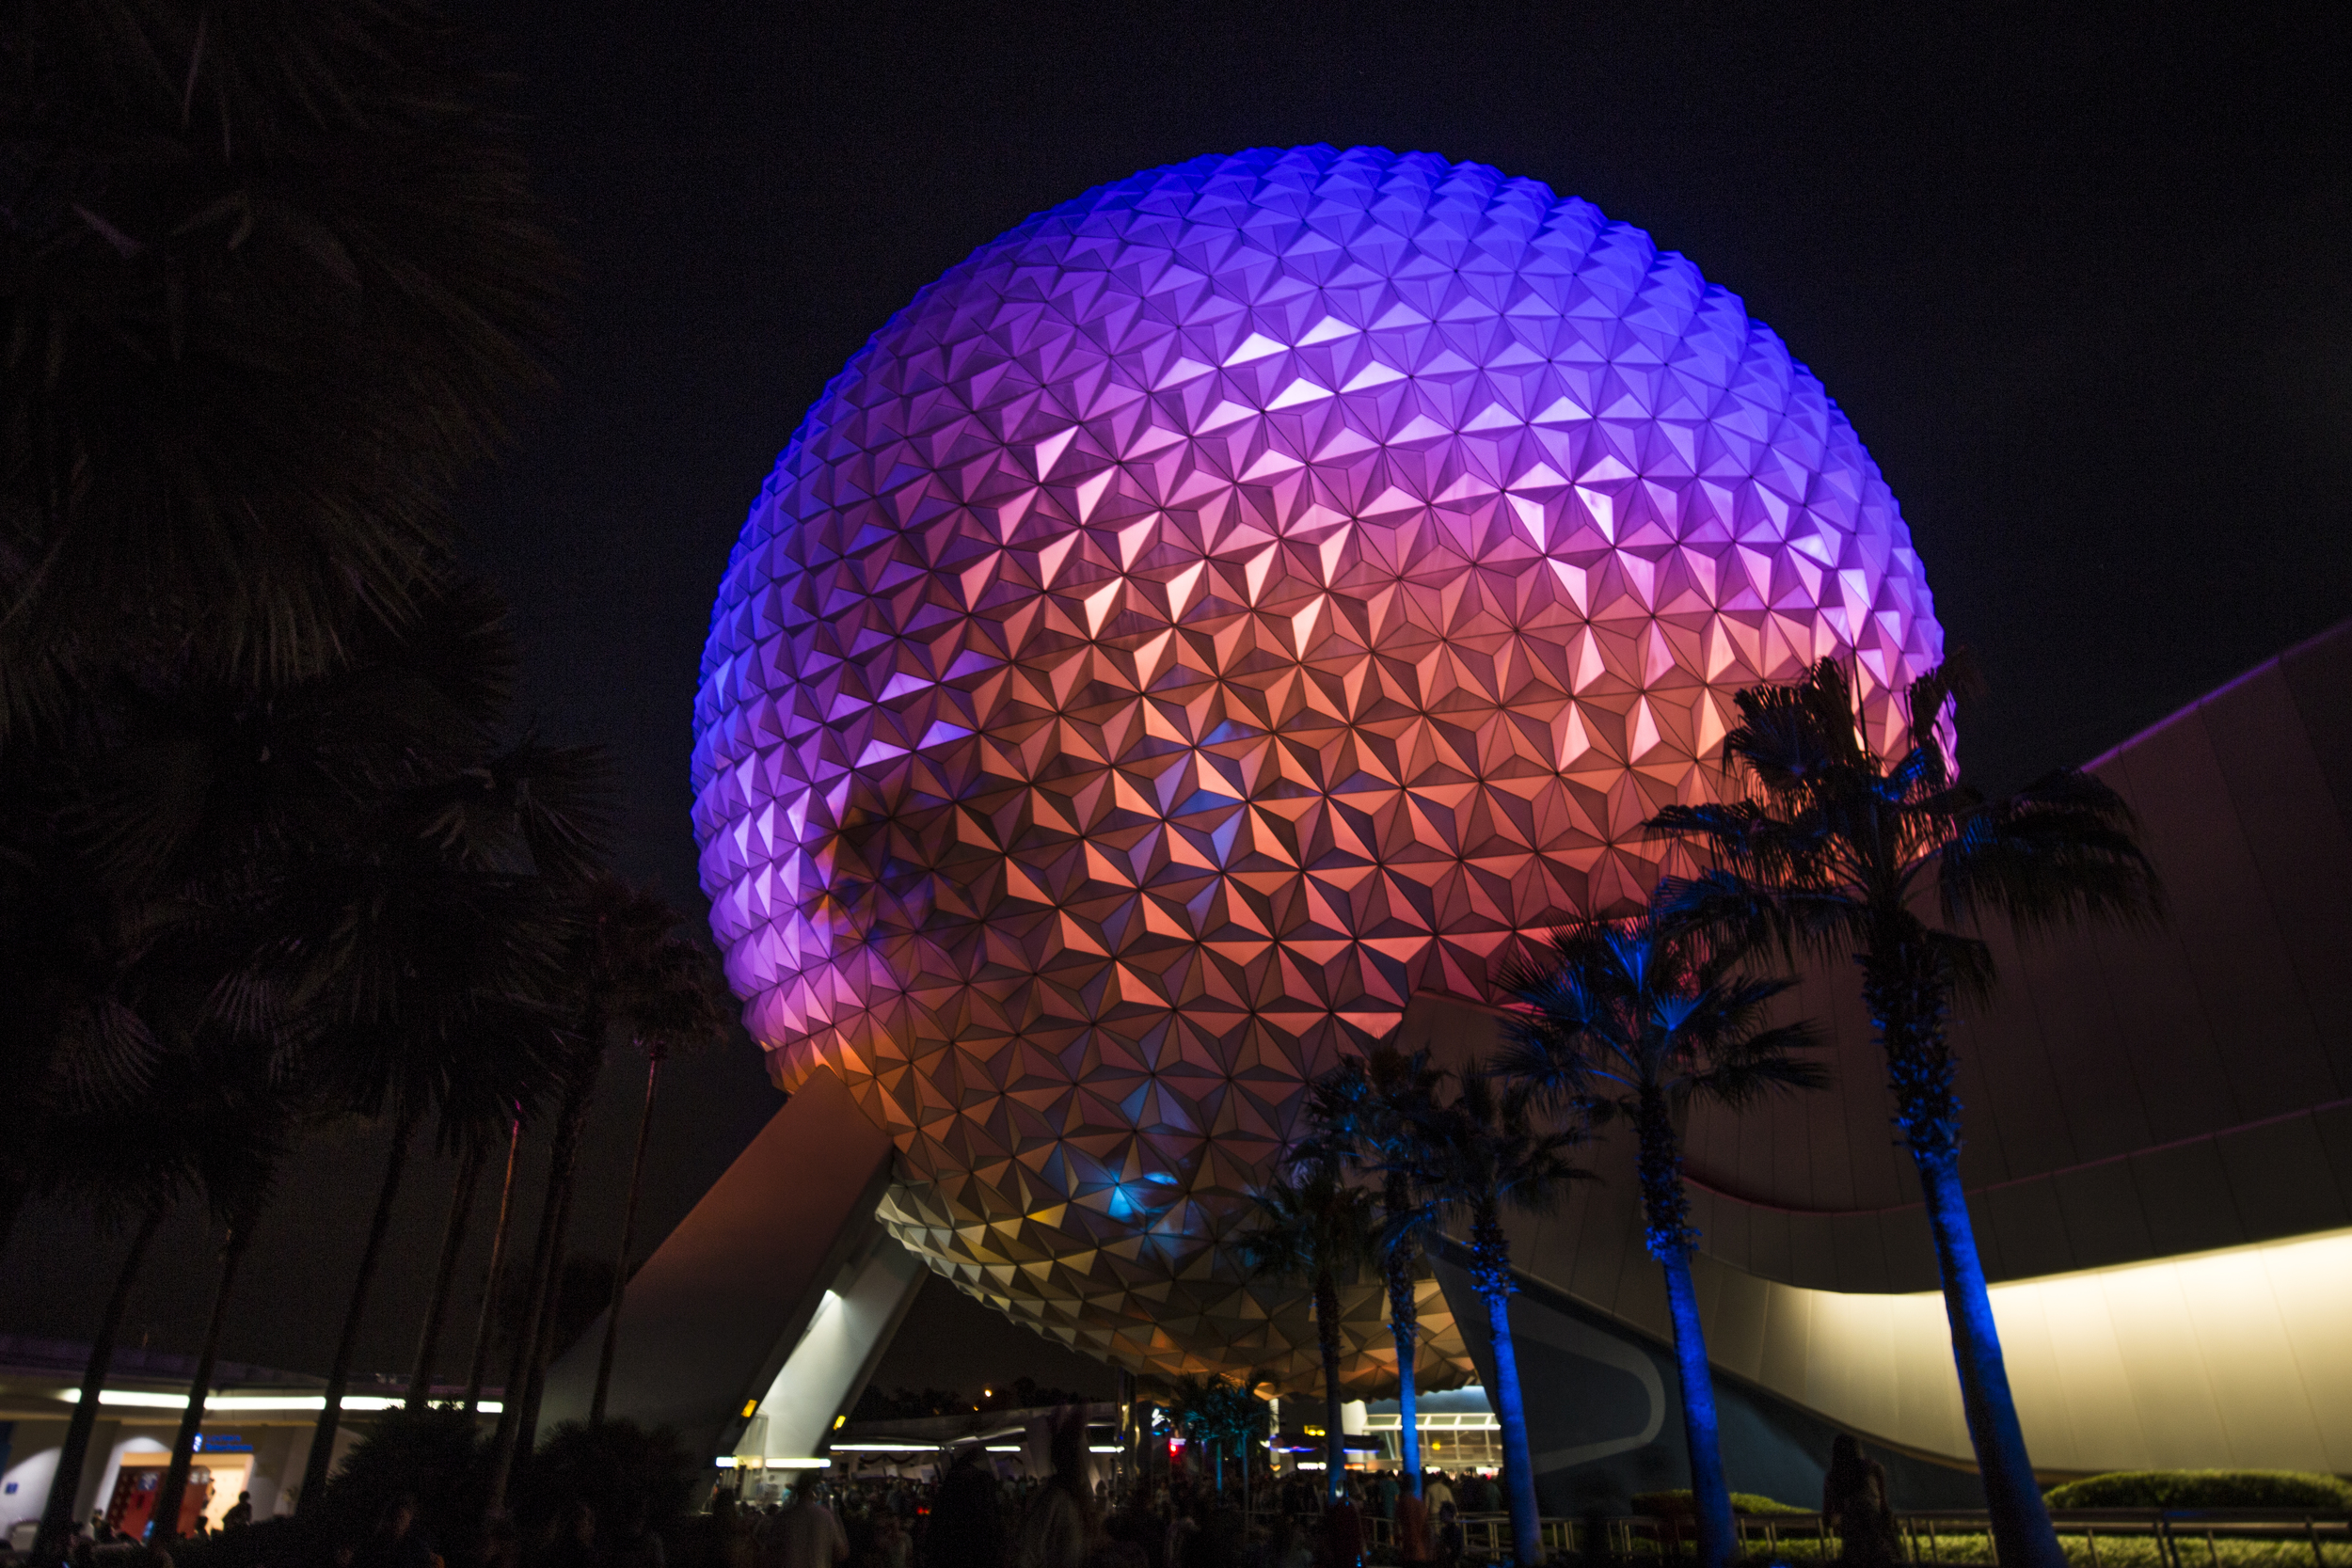 Spaceship Earth at night.